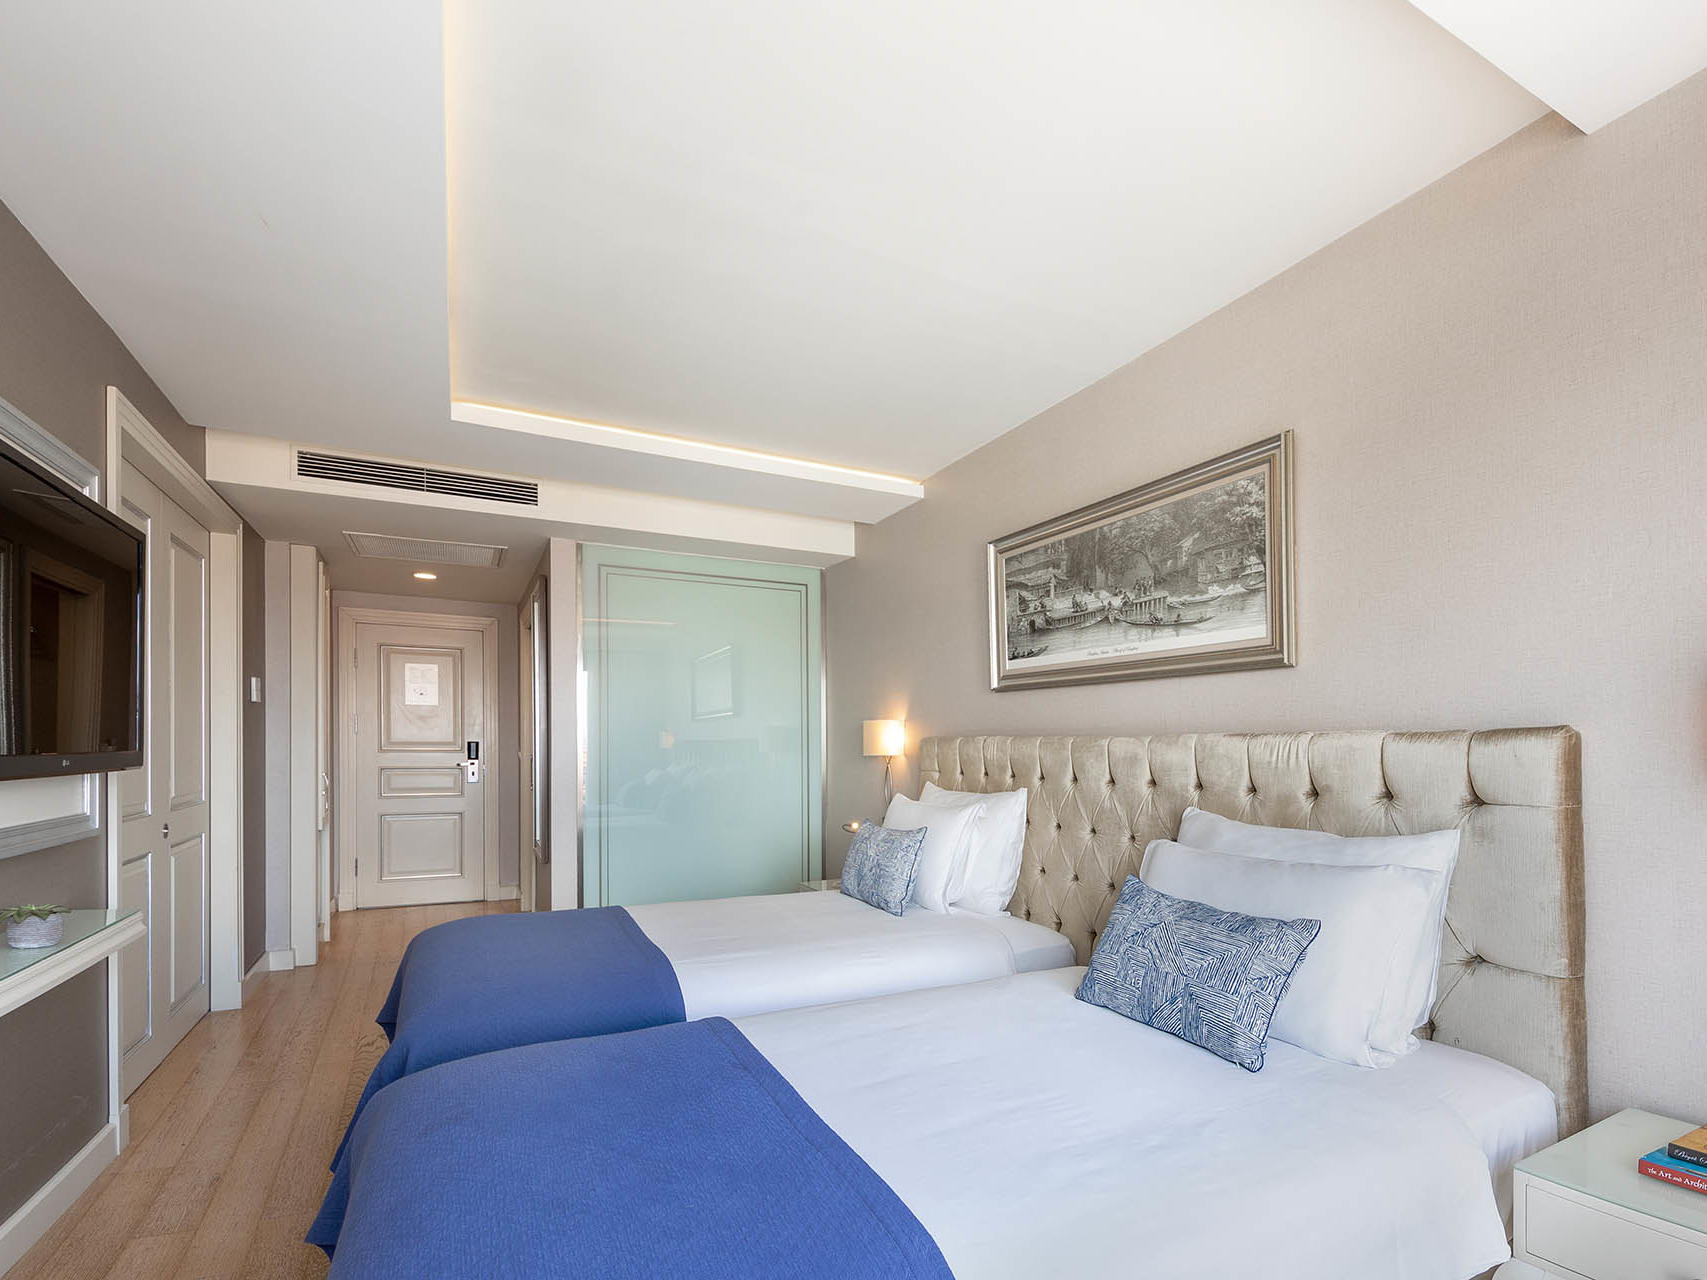 Deluxe room at CVK Hotels in Istanbul